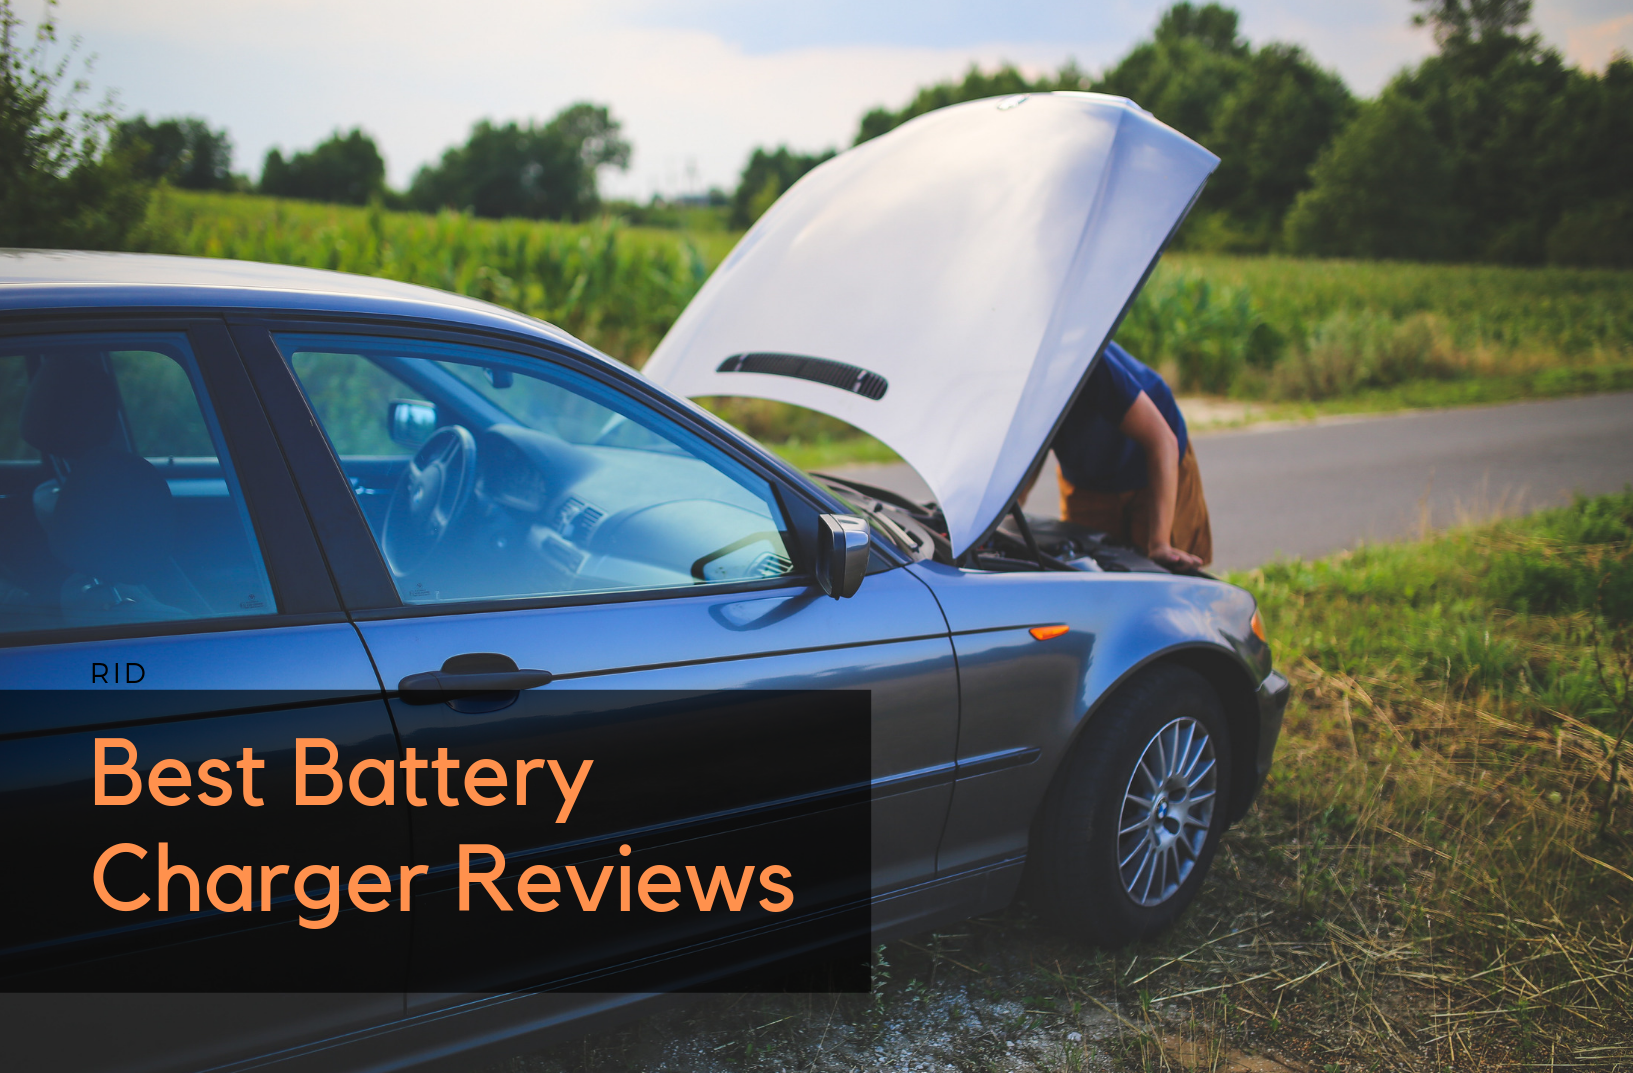 Car Battery Charger Reviews >> 10 Best Battery Charger Reviews 2020 Edition Top Ten Select